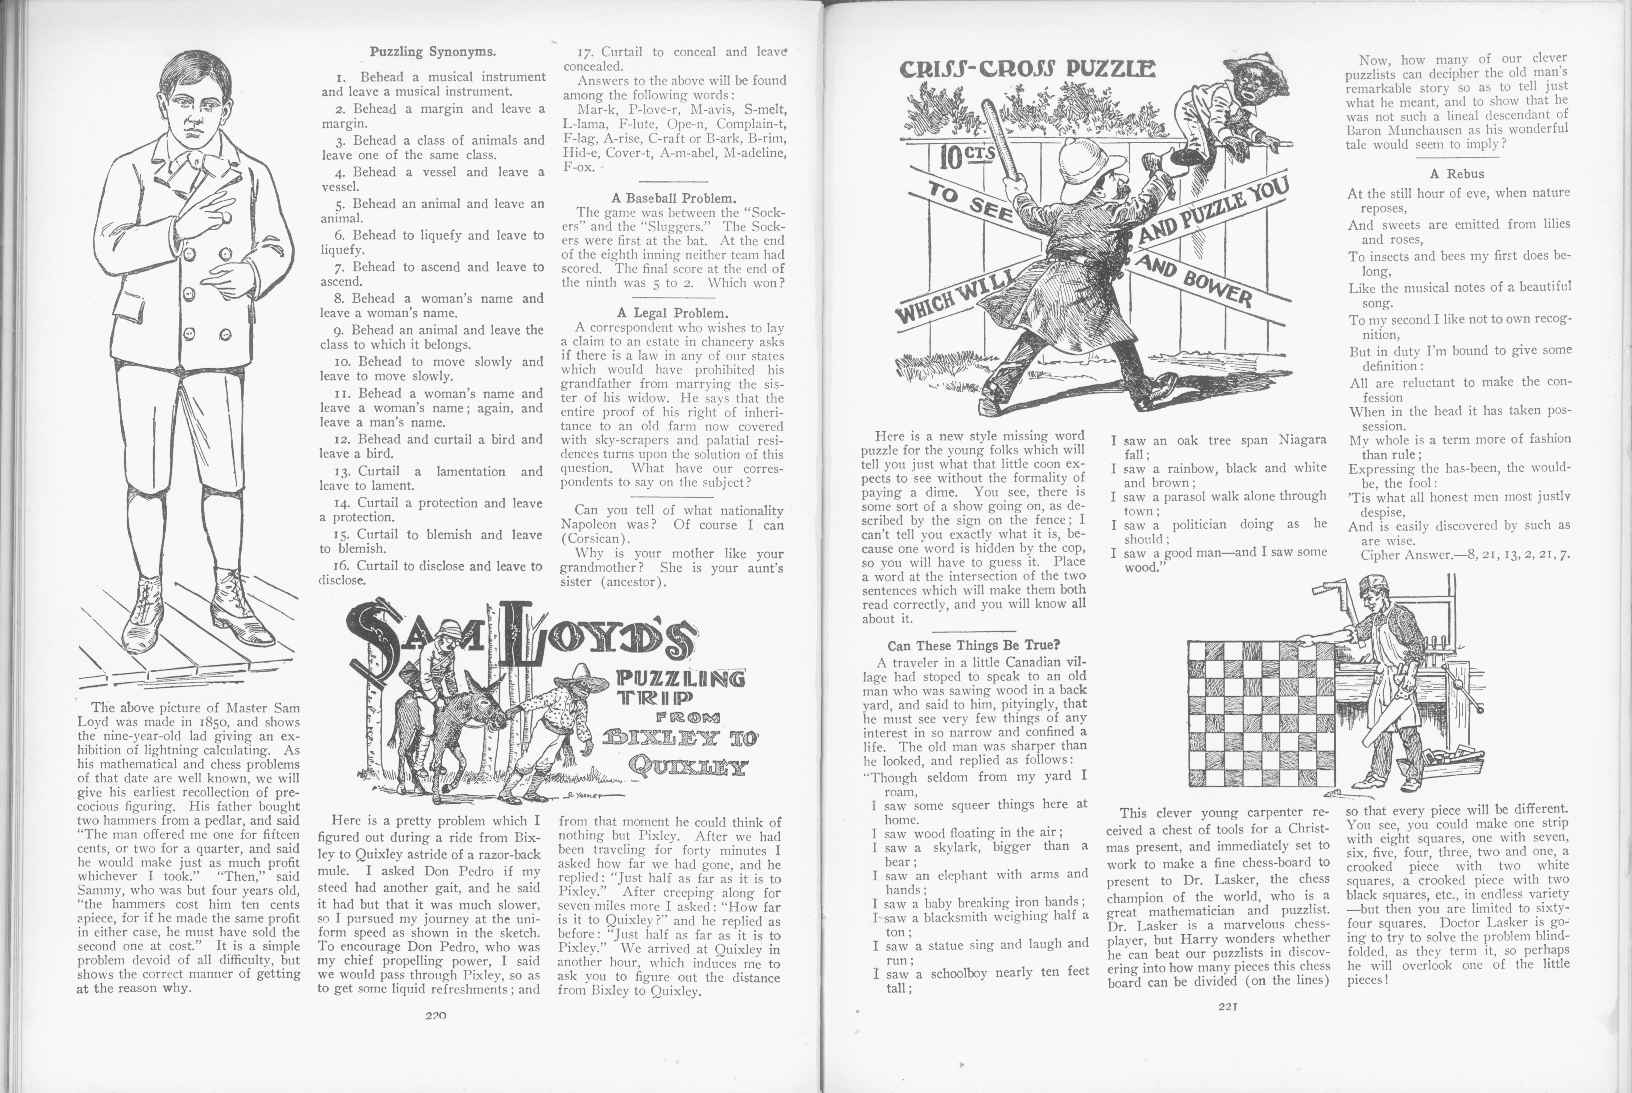 Sam Loyd - Cyclopedia of Puzzles - page 220-221